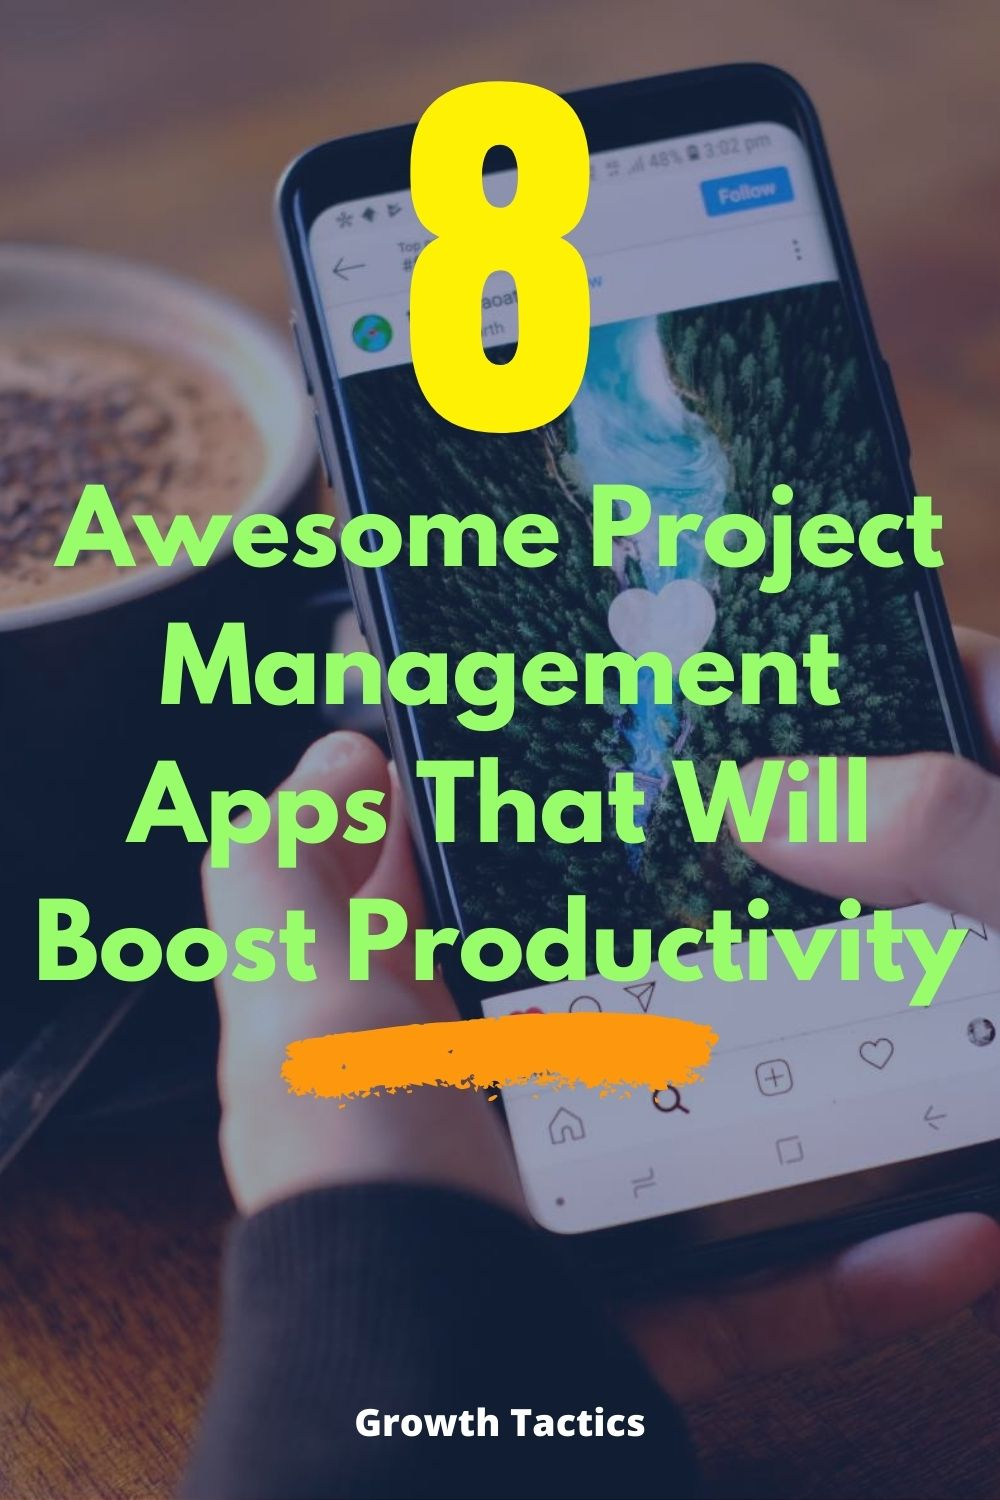 8 Awesome Project Management Apps That Will Boost Productivity